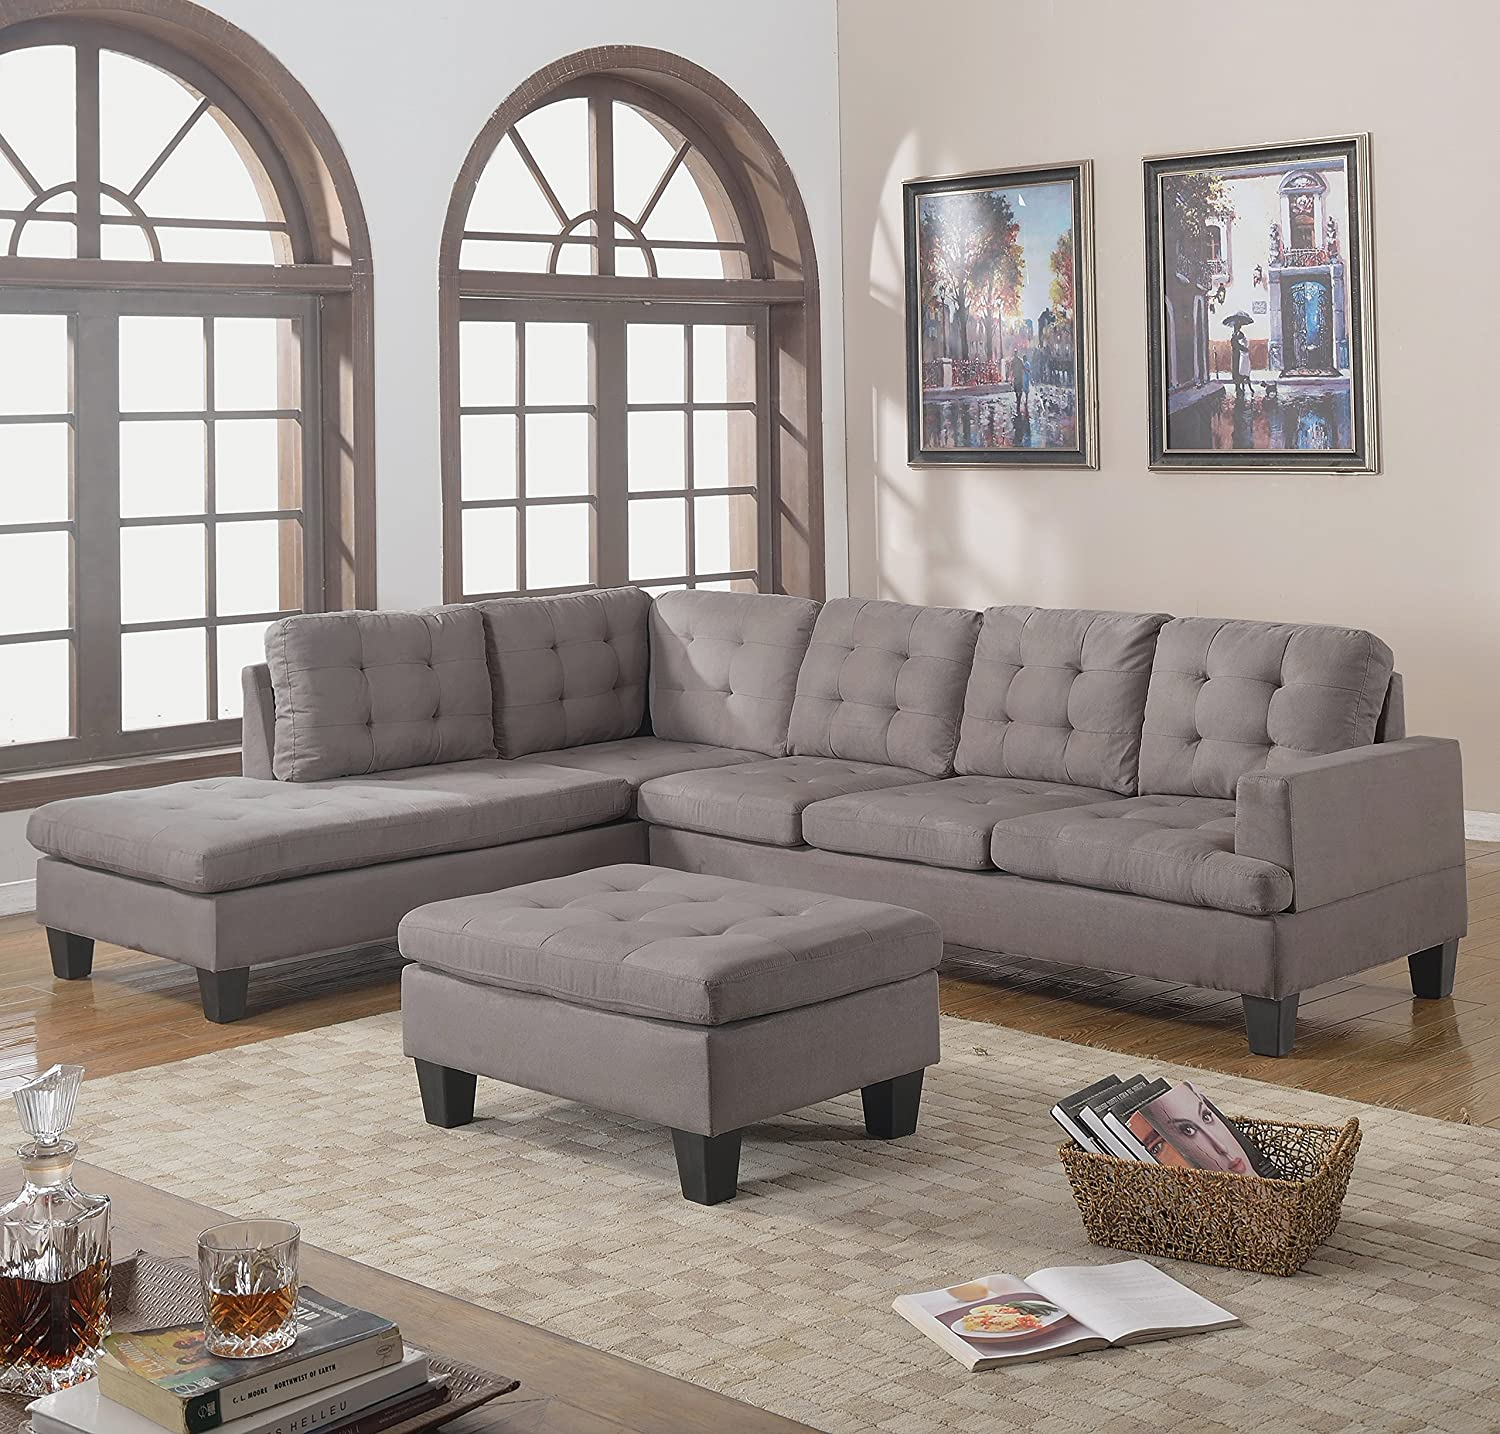 Amazon Divano Roma Furniture 3 Piece Reversible Chaise Sectional Sofa With Ottoman Grey Charcoal Kitchen Dining